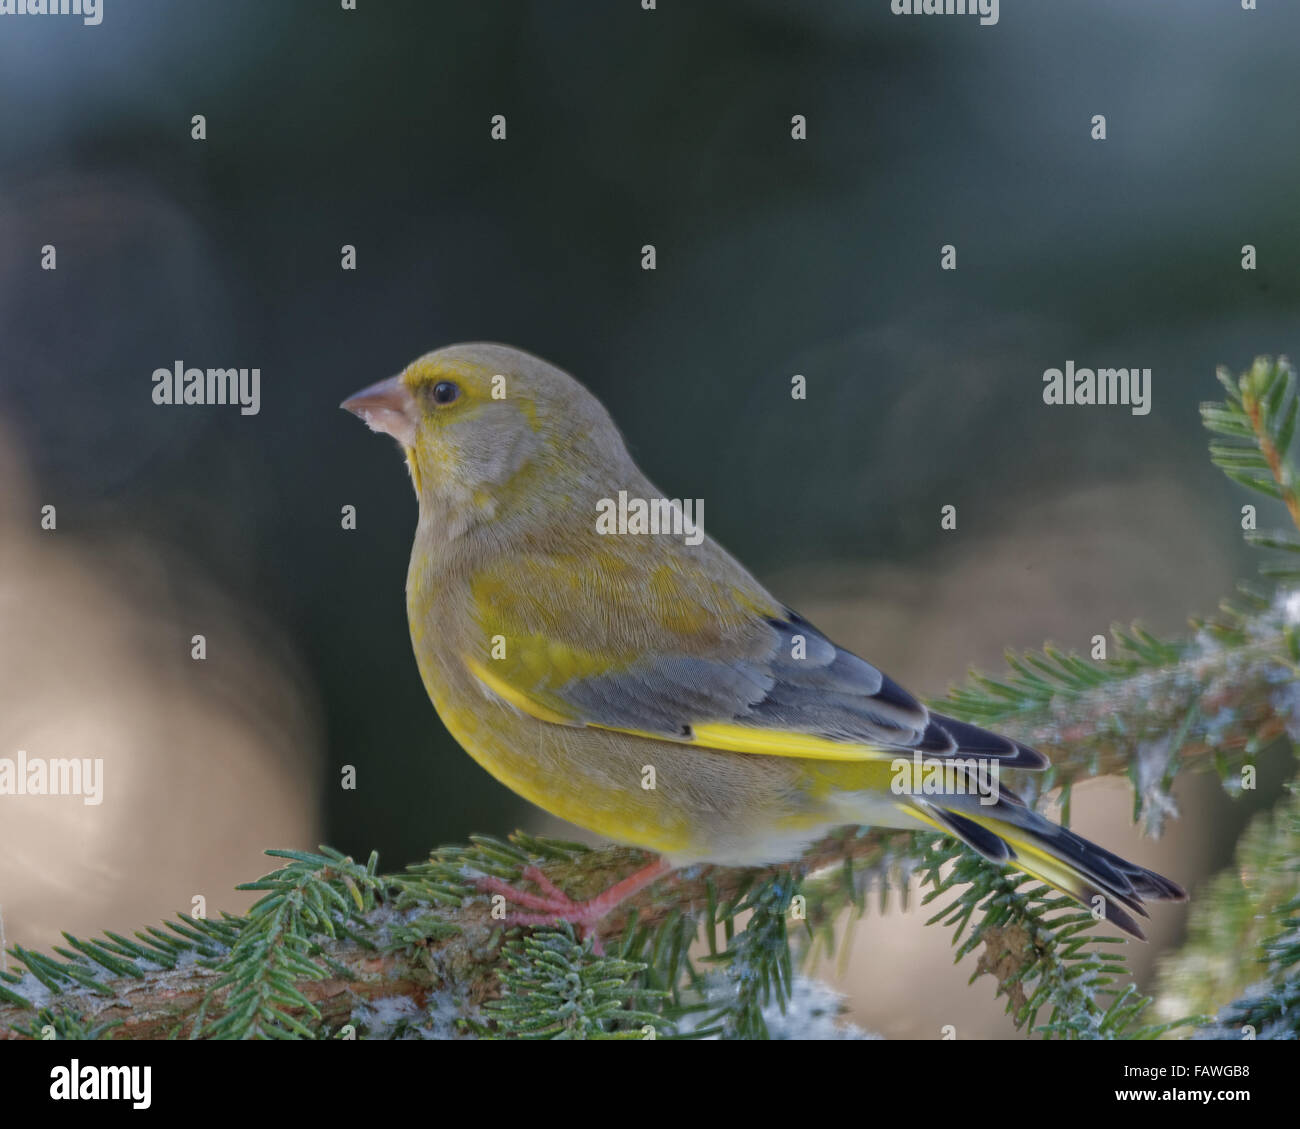 Greenfinch (Chloris chloris) is a small passerine bird in the finch family. - Stock Image